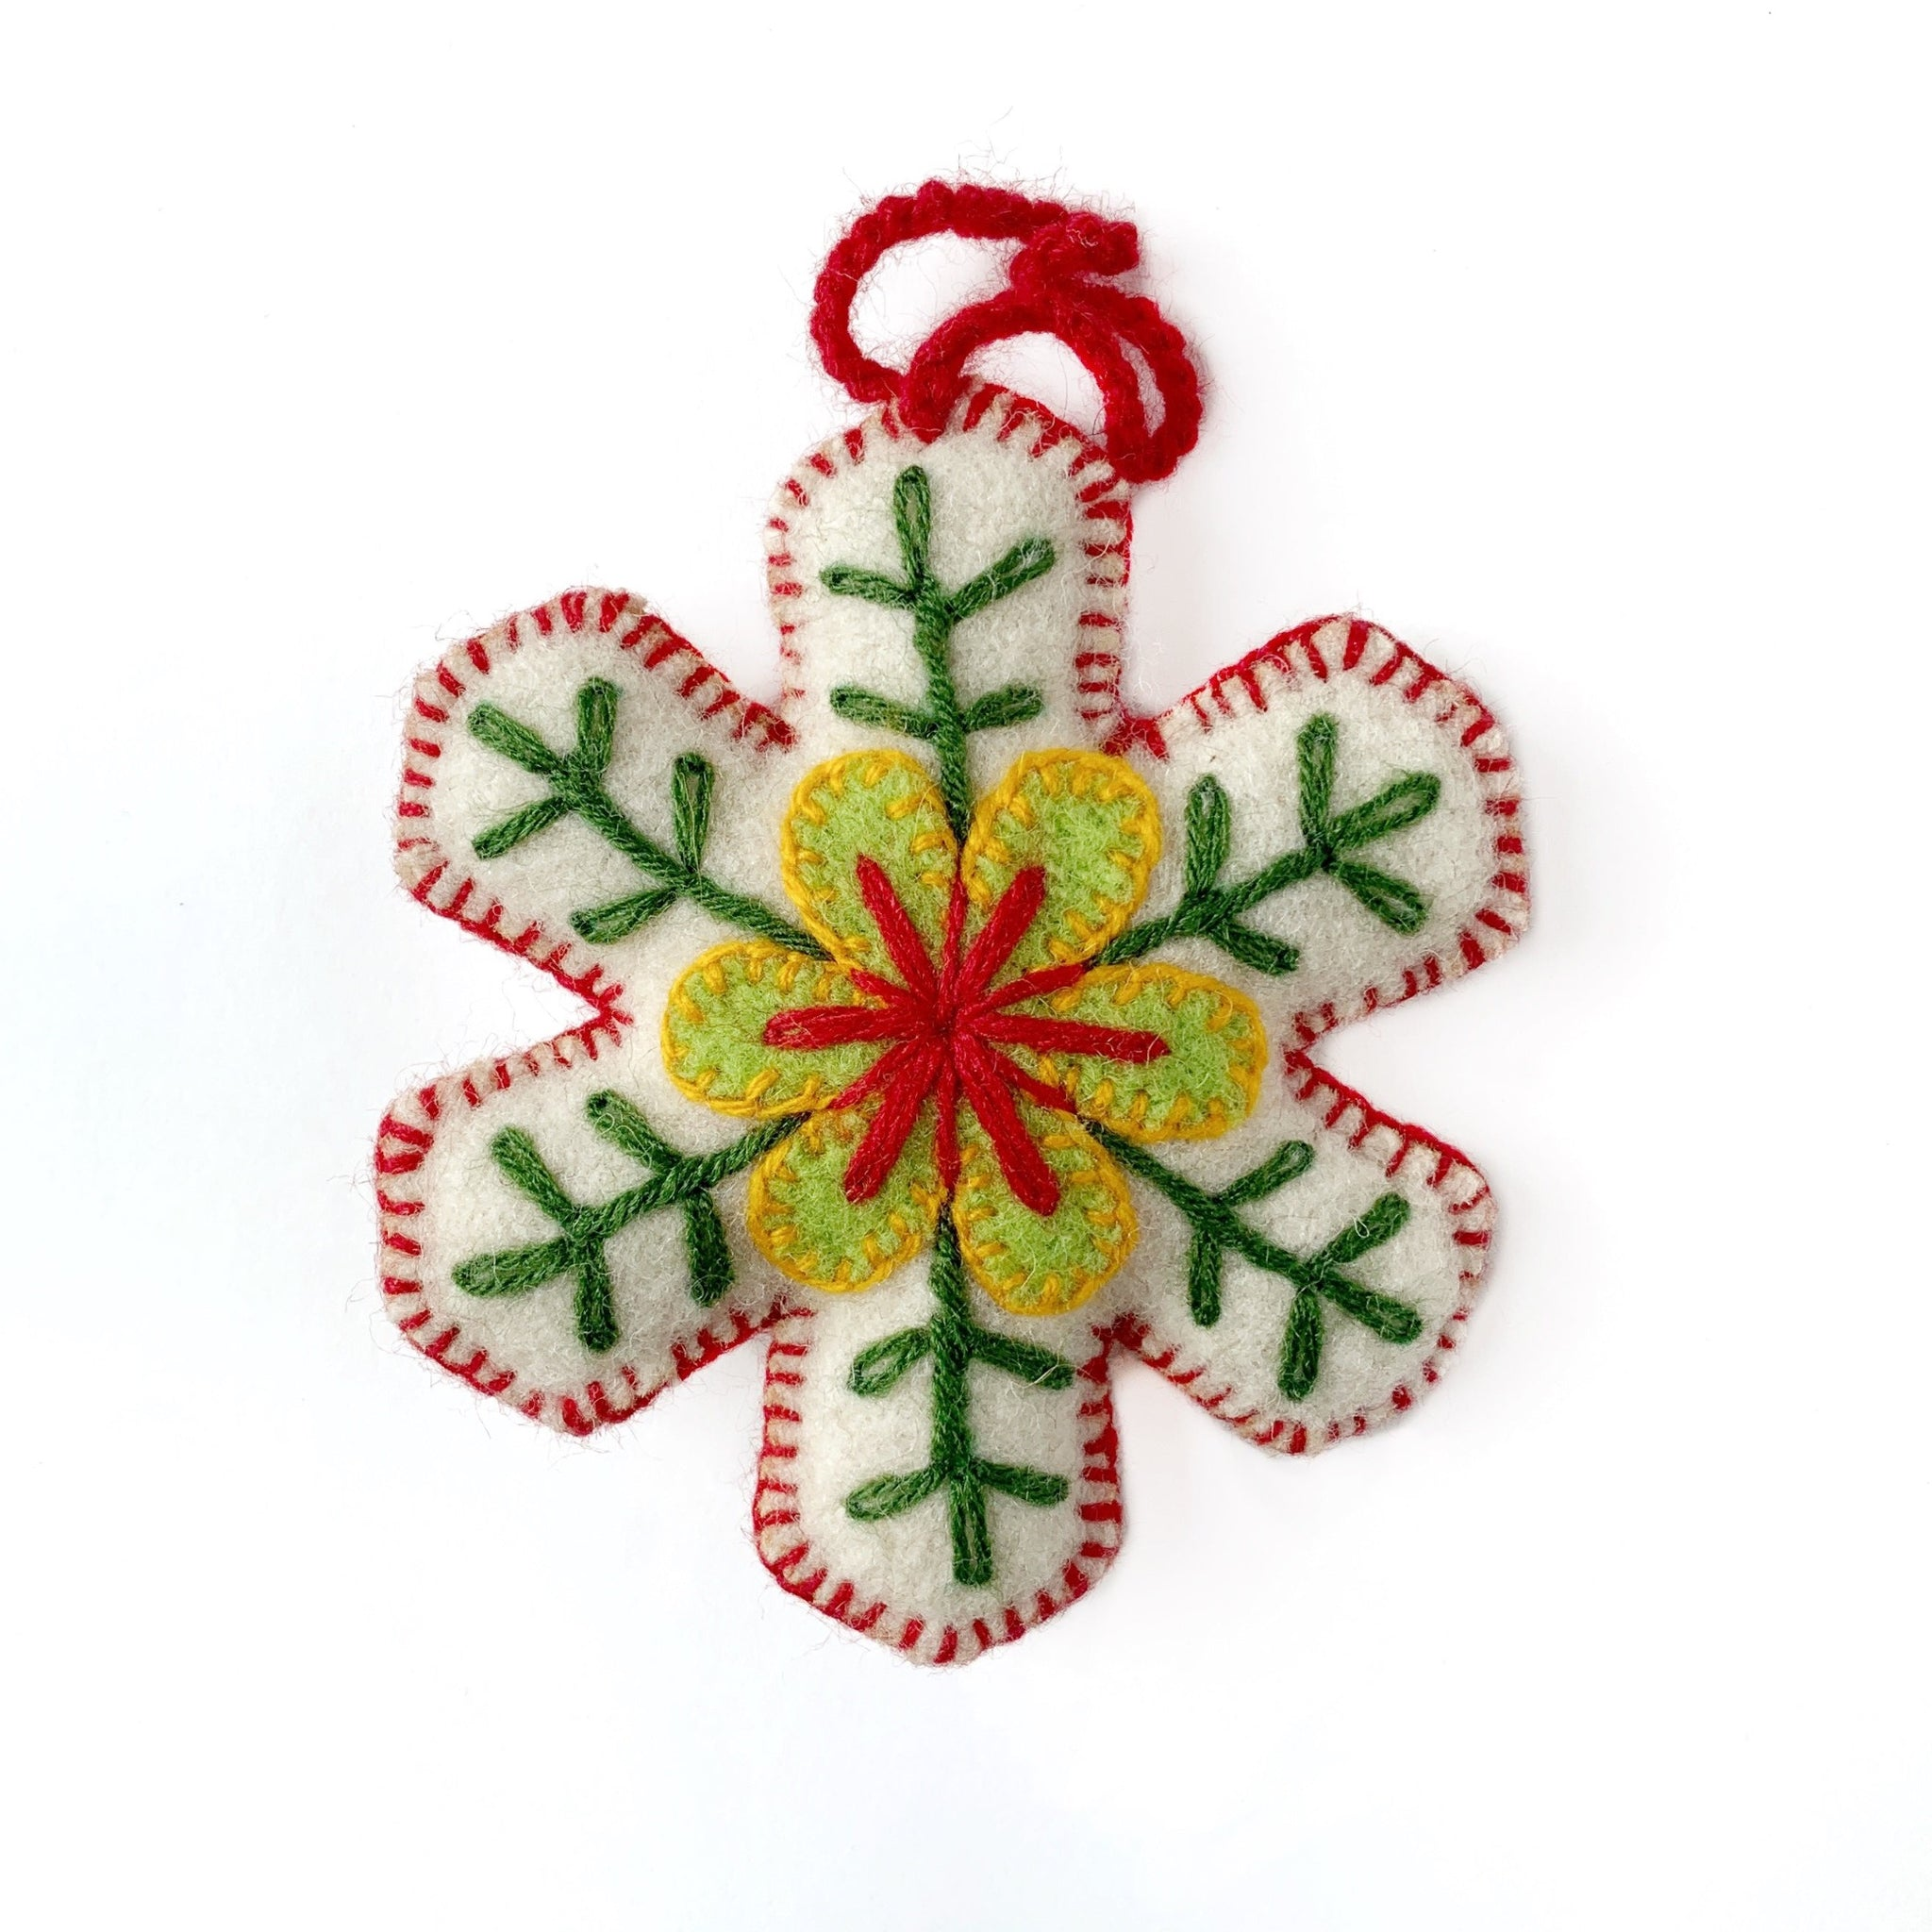 Embroidered Wool Snowflake Ornament Classic Christmas